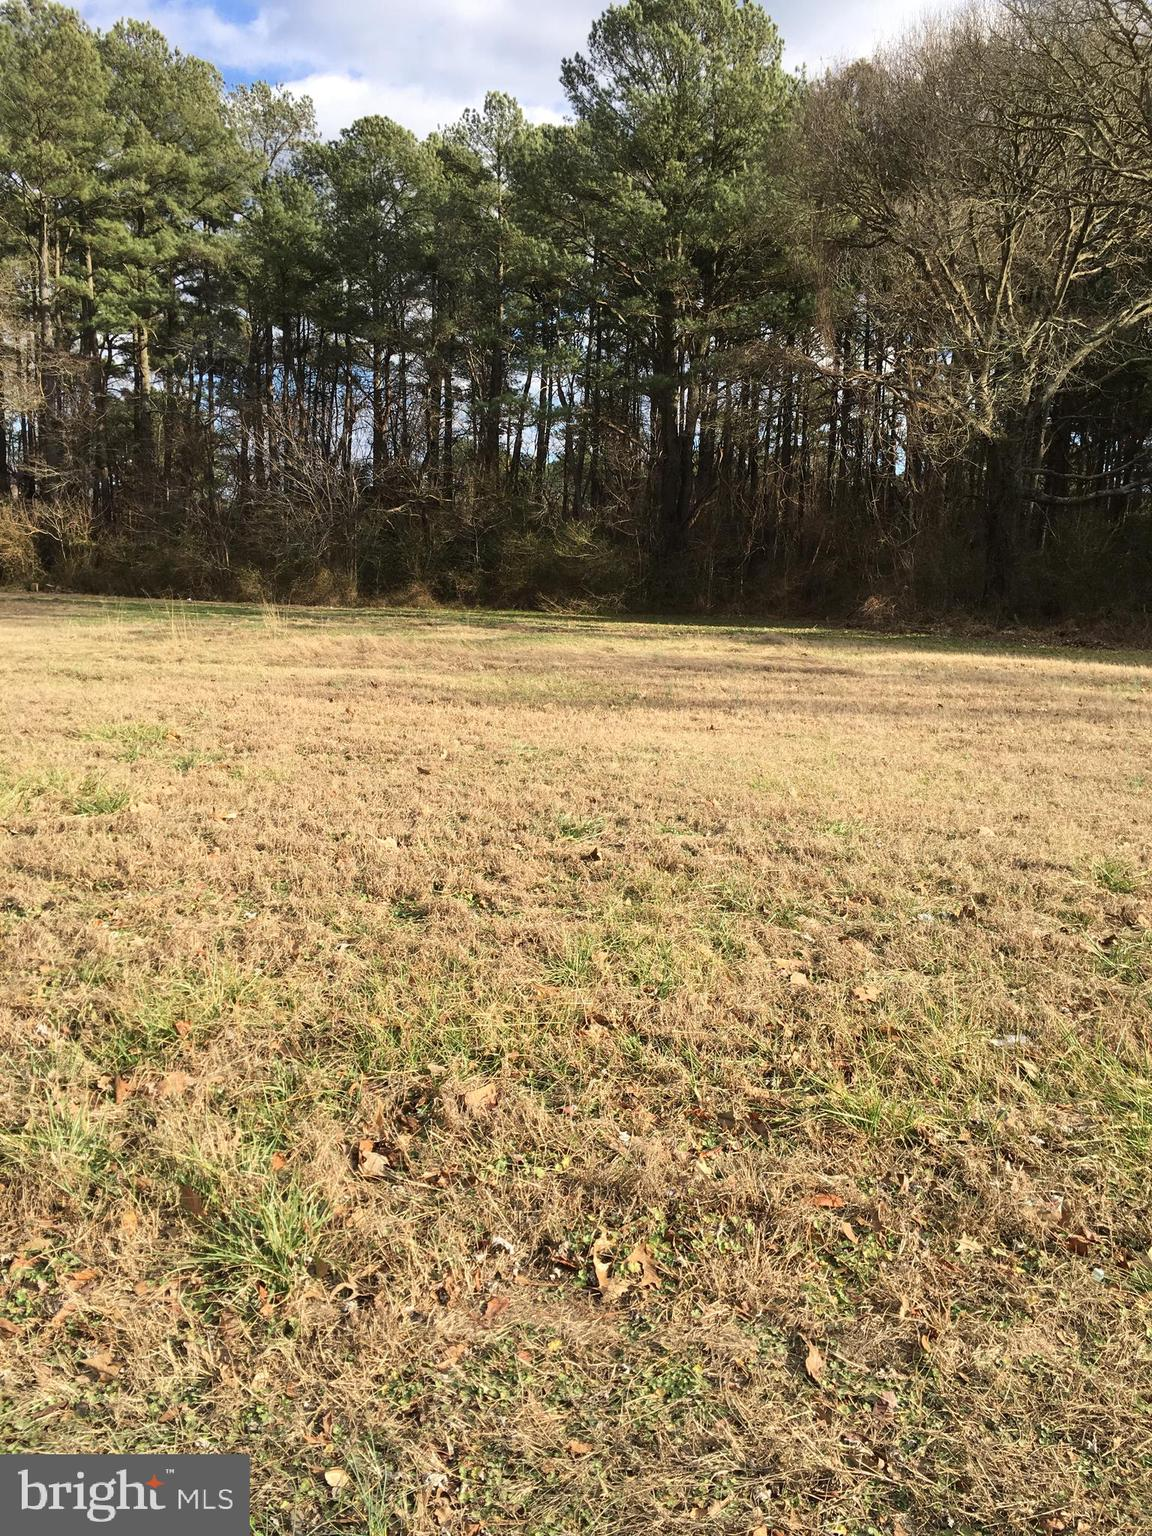 Sales price include   3 lots 2113, 2115, 2117  Northwood  Dr. each lot is 50x200